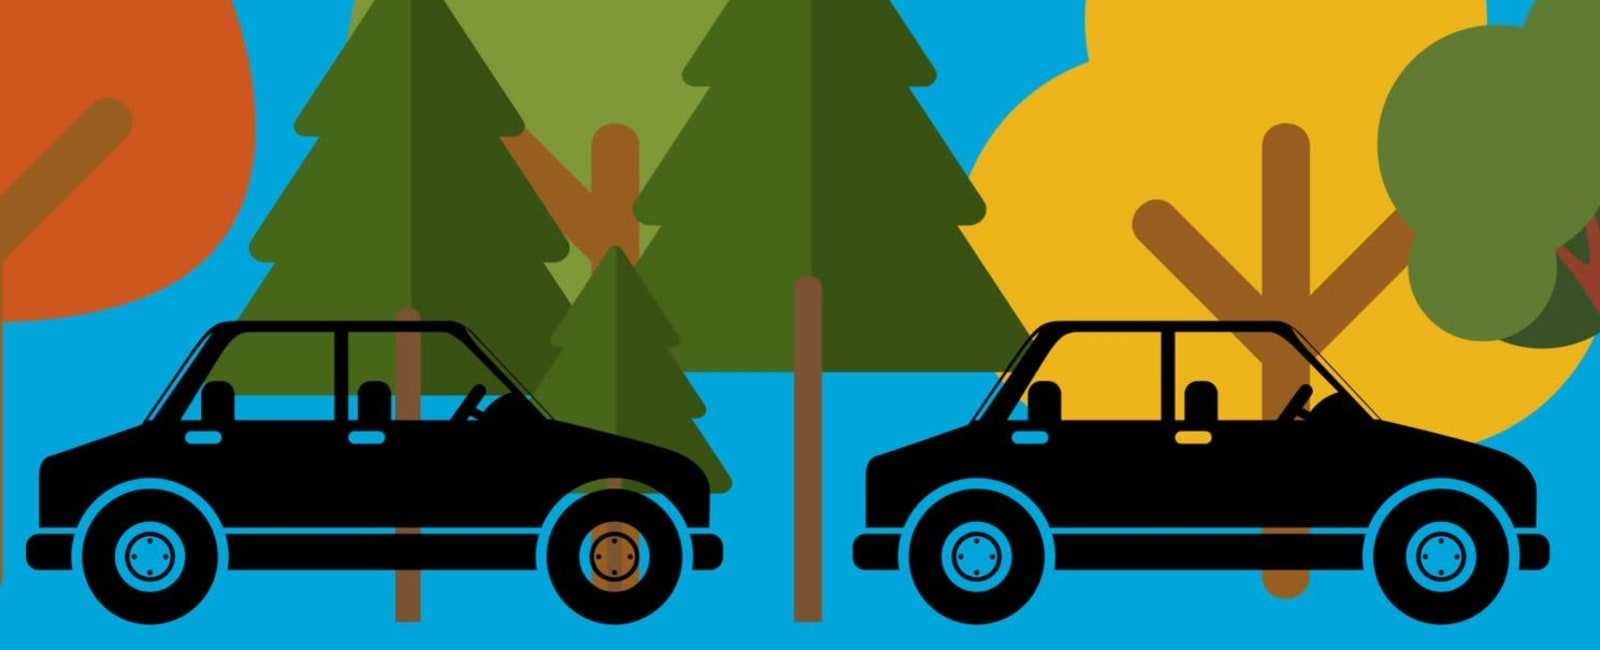 Graphic of cars and trees